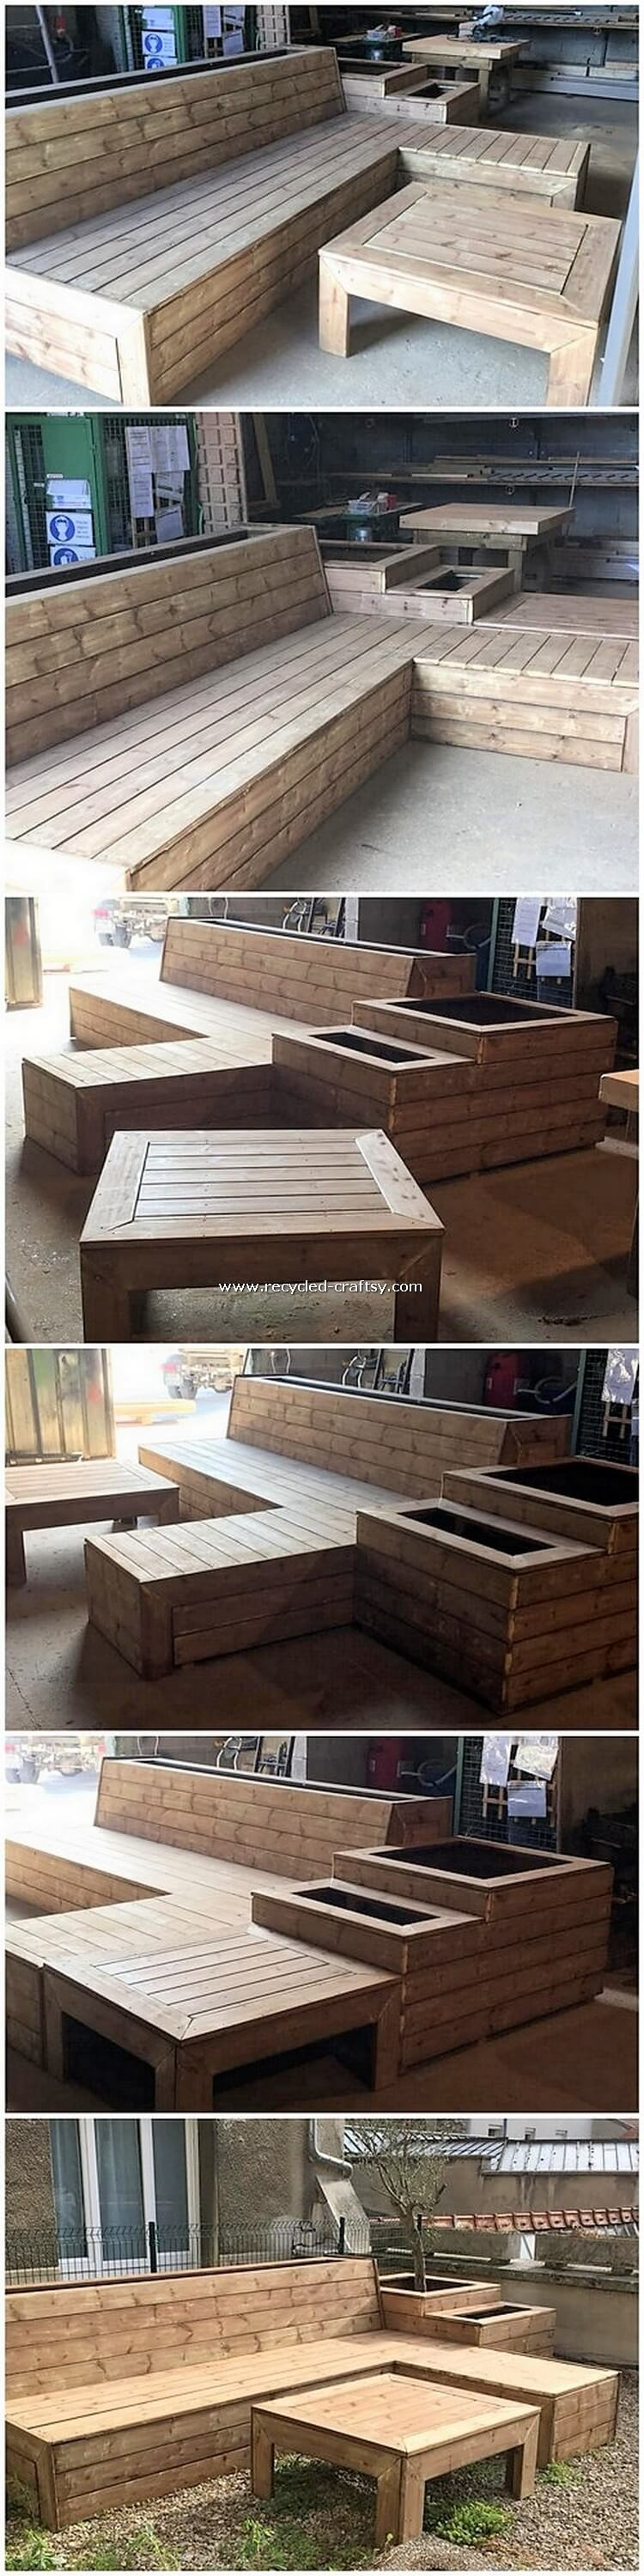 Pallet Bench and Outdoor Table